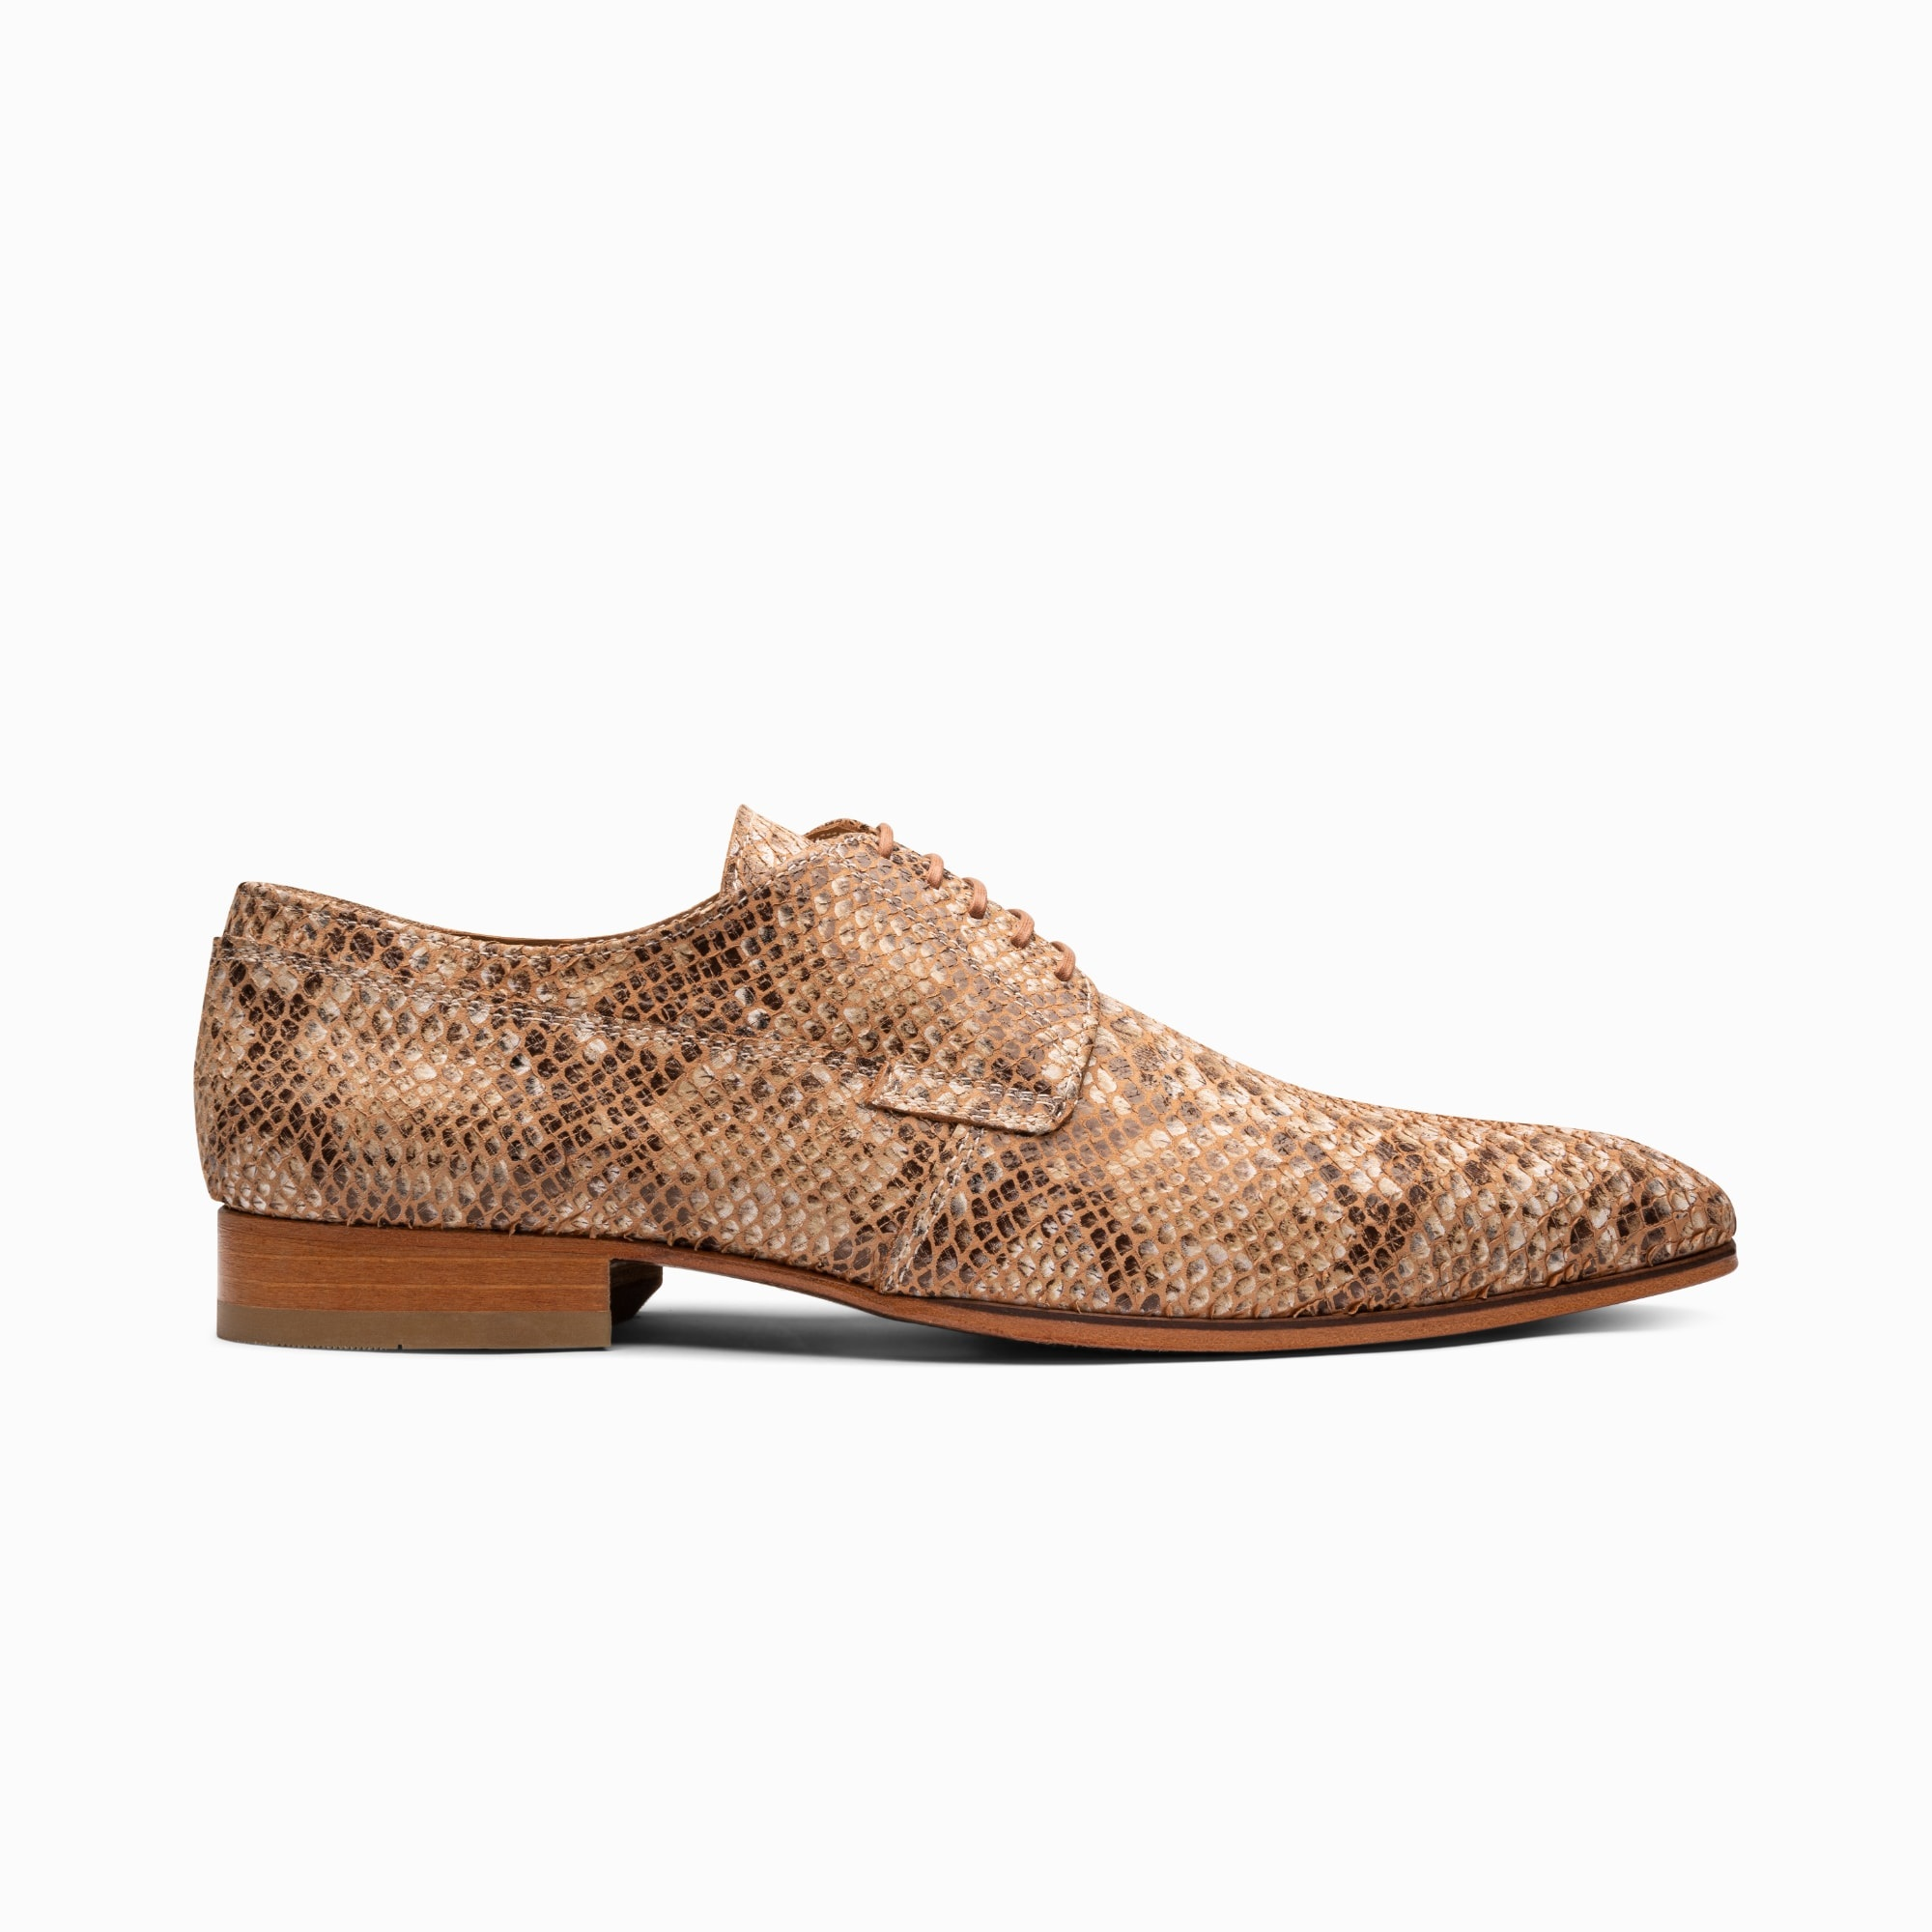 anaconda-silver brown-leather shoes-1708-1